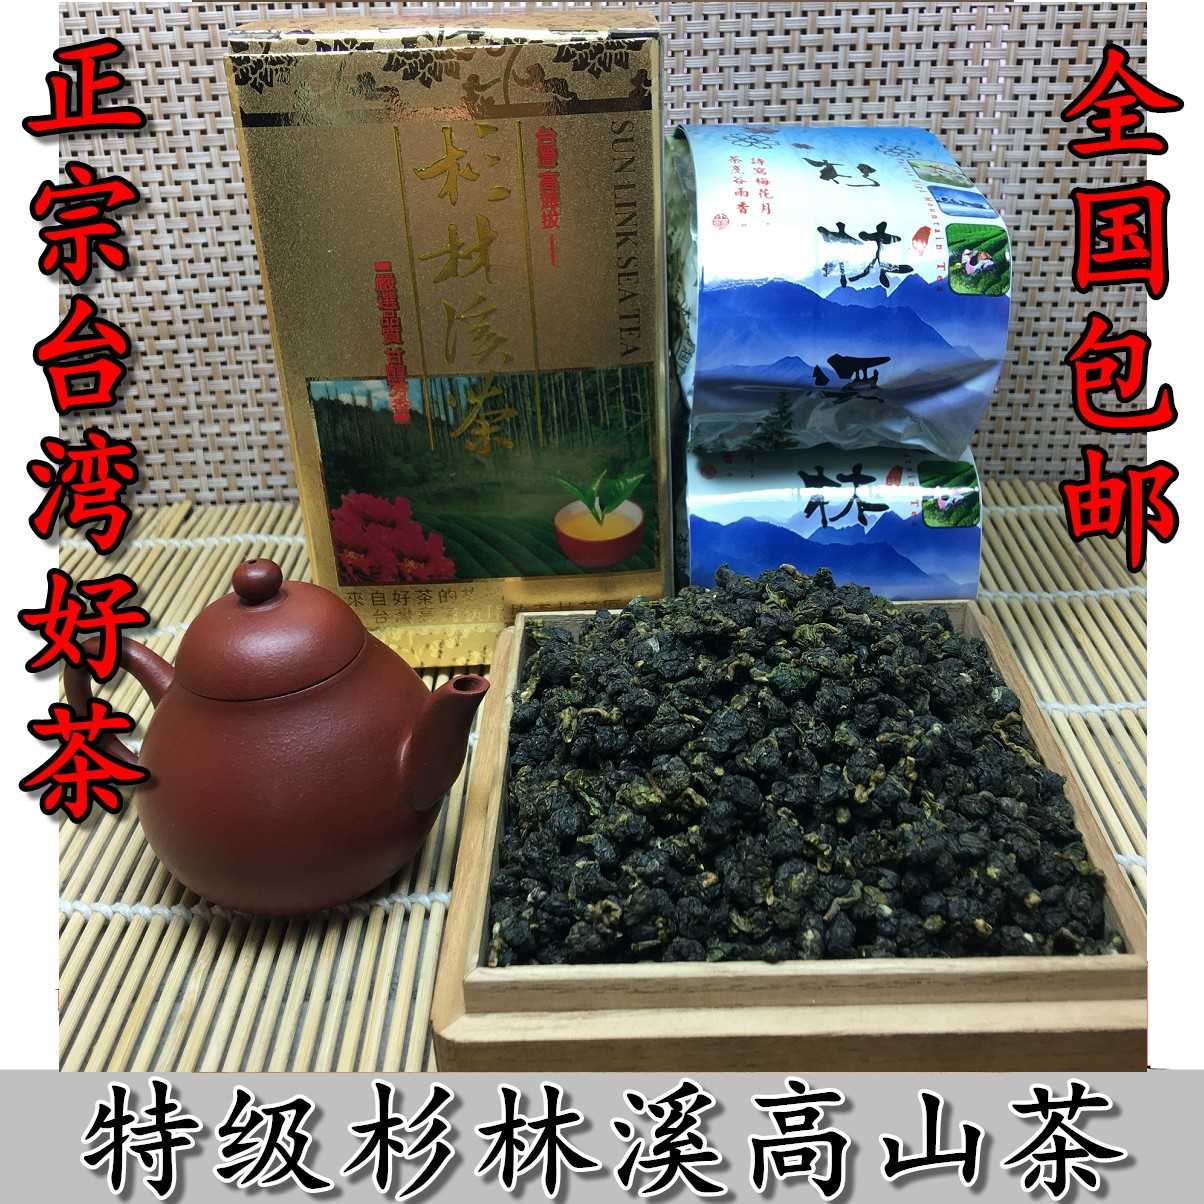 Taiwan Alpine Tea Taiwan Shanlinxi Alpine Tea Authentic Original Imported Genuine Frozen Top Oolong Tea Cold Tea